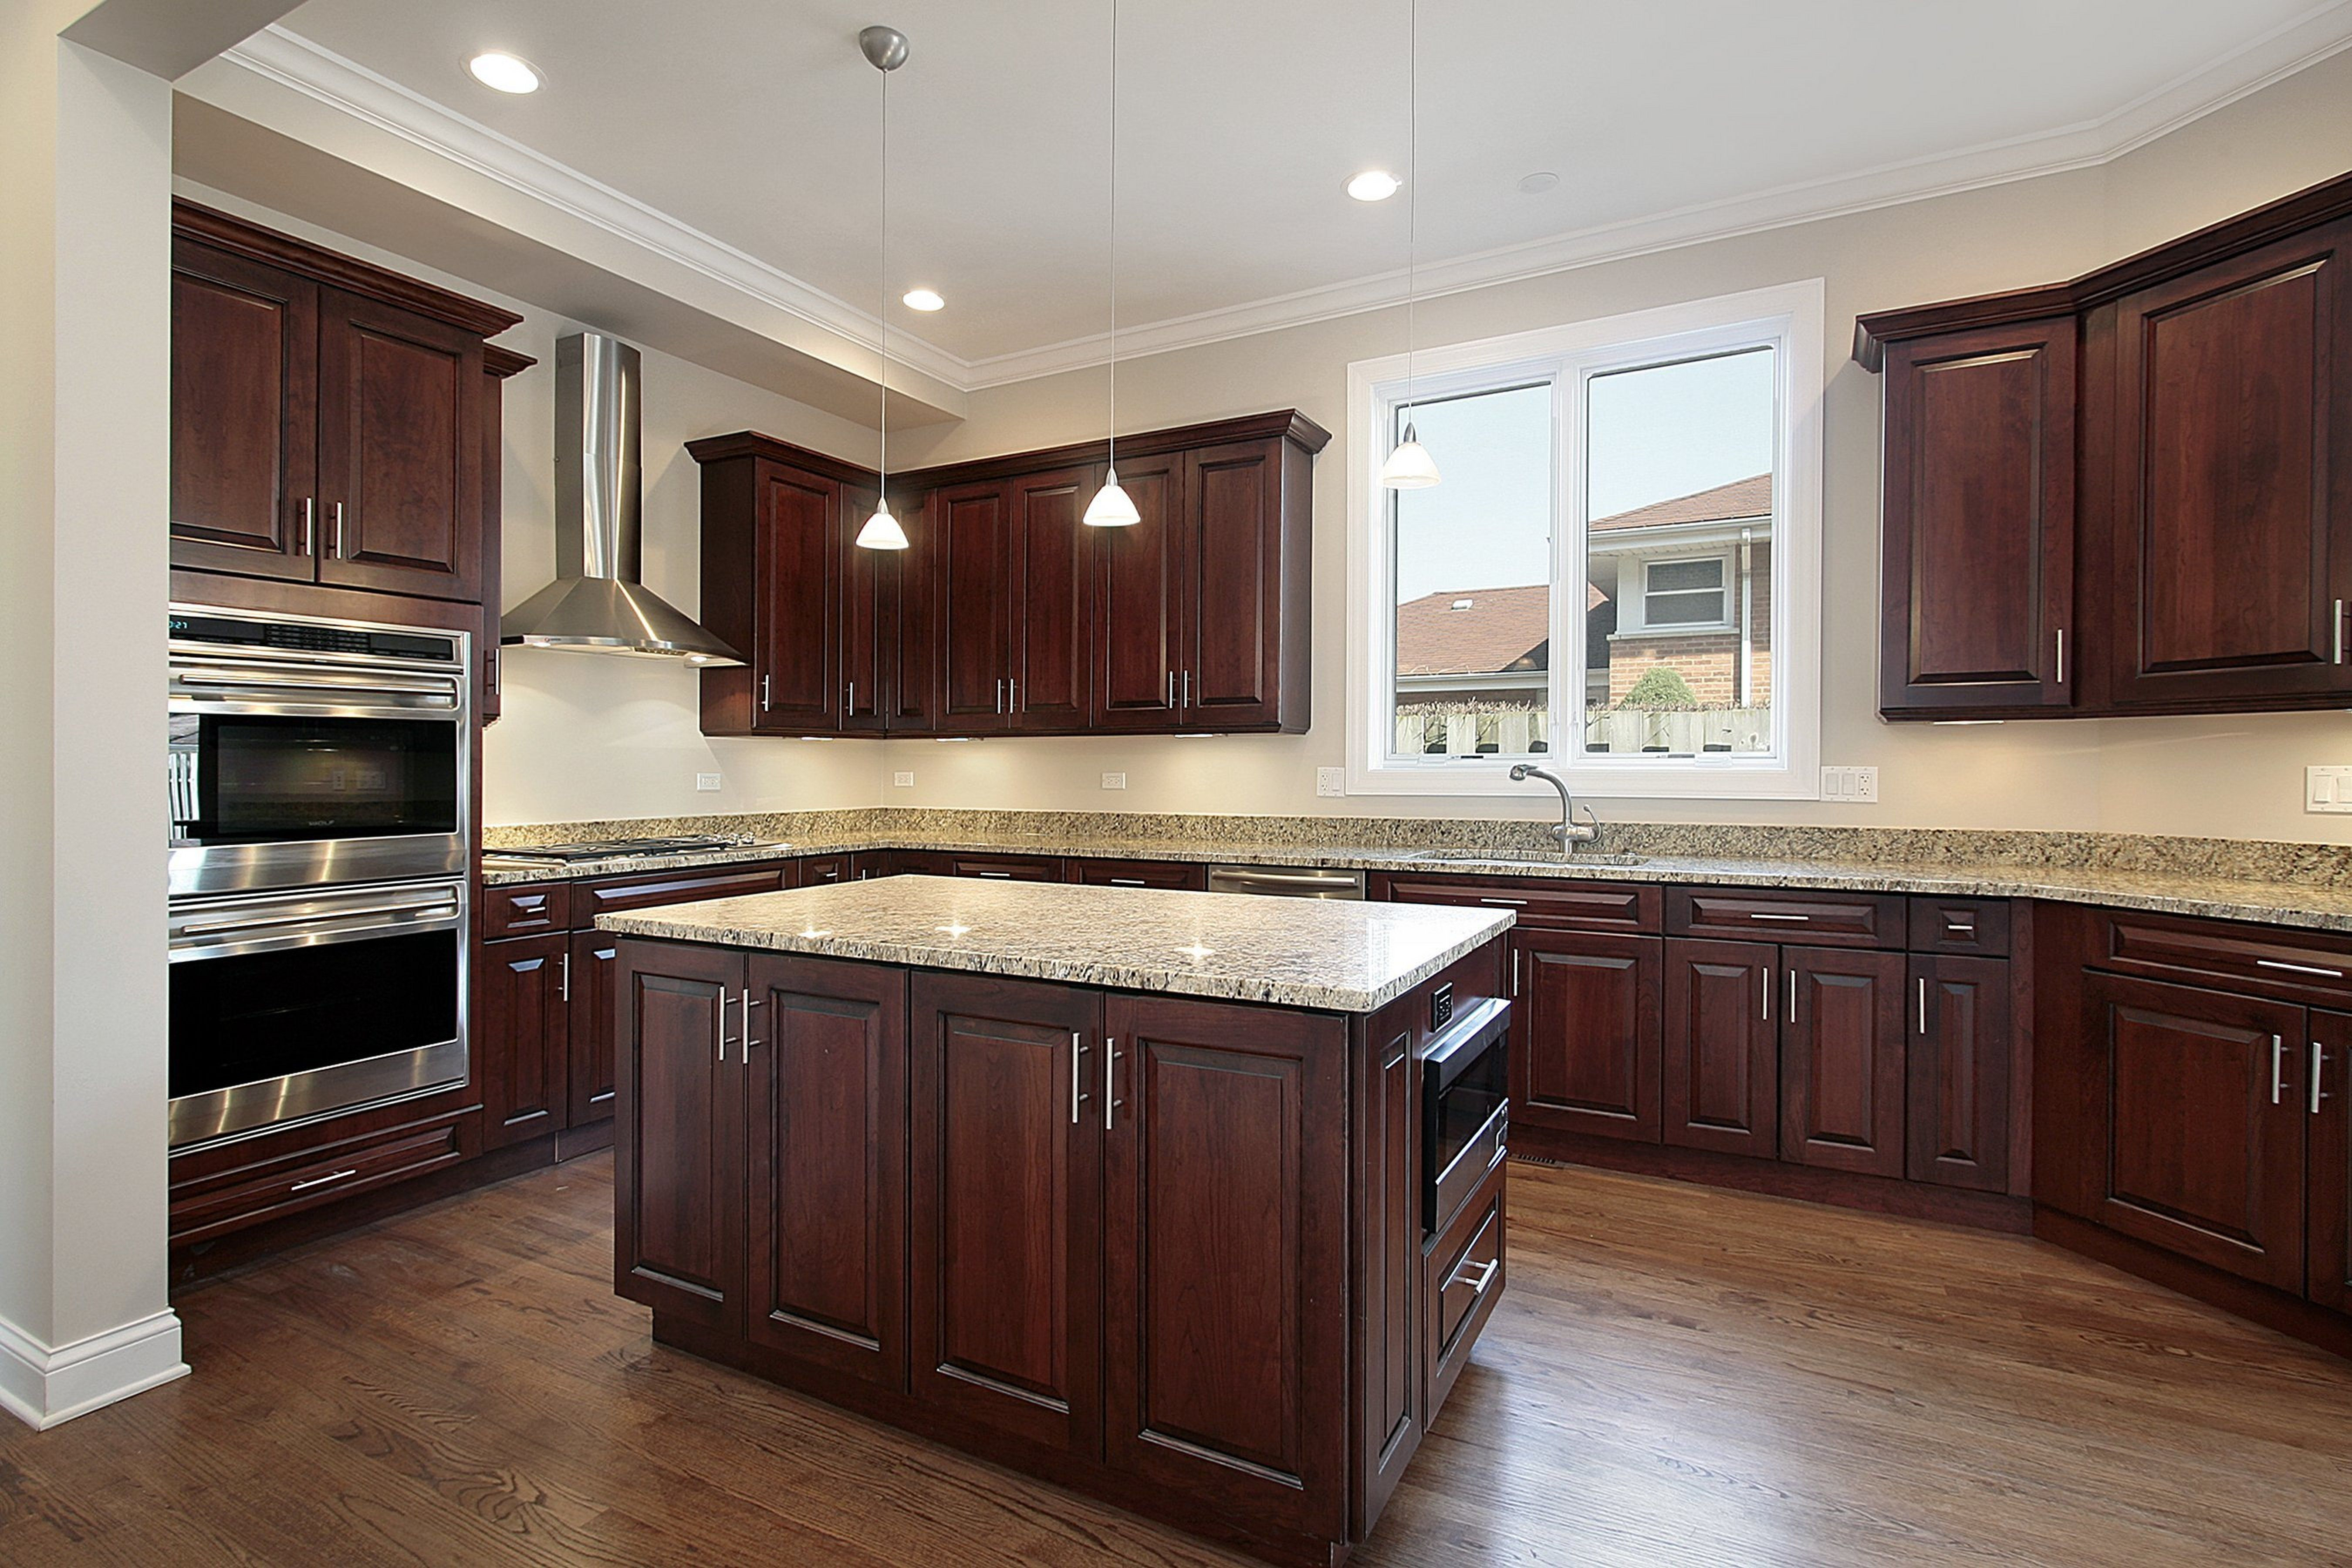 Kitchen Renovation Ideas | Kitchen Renovations Ottawa U2013 RenosGroup.ca